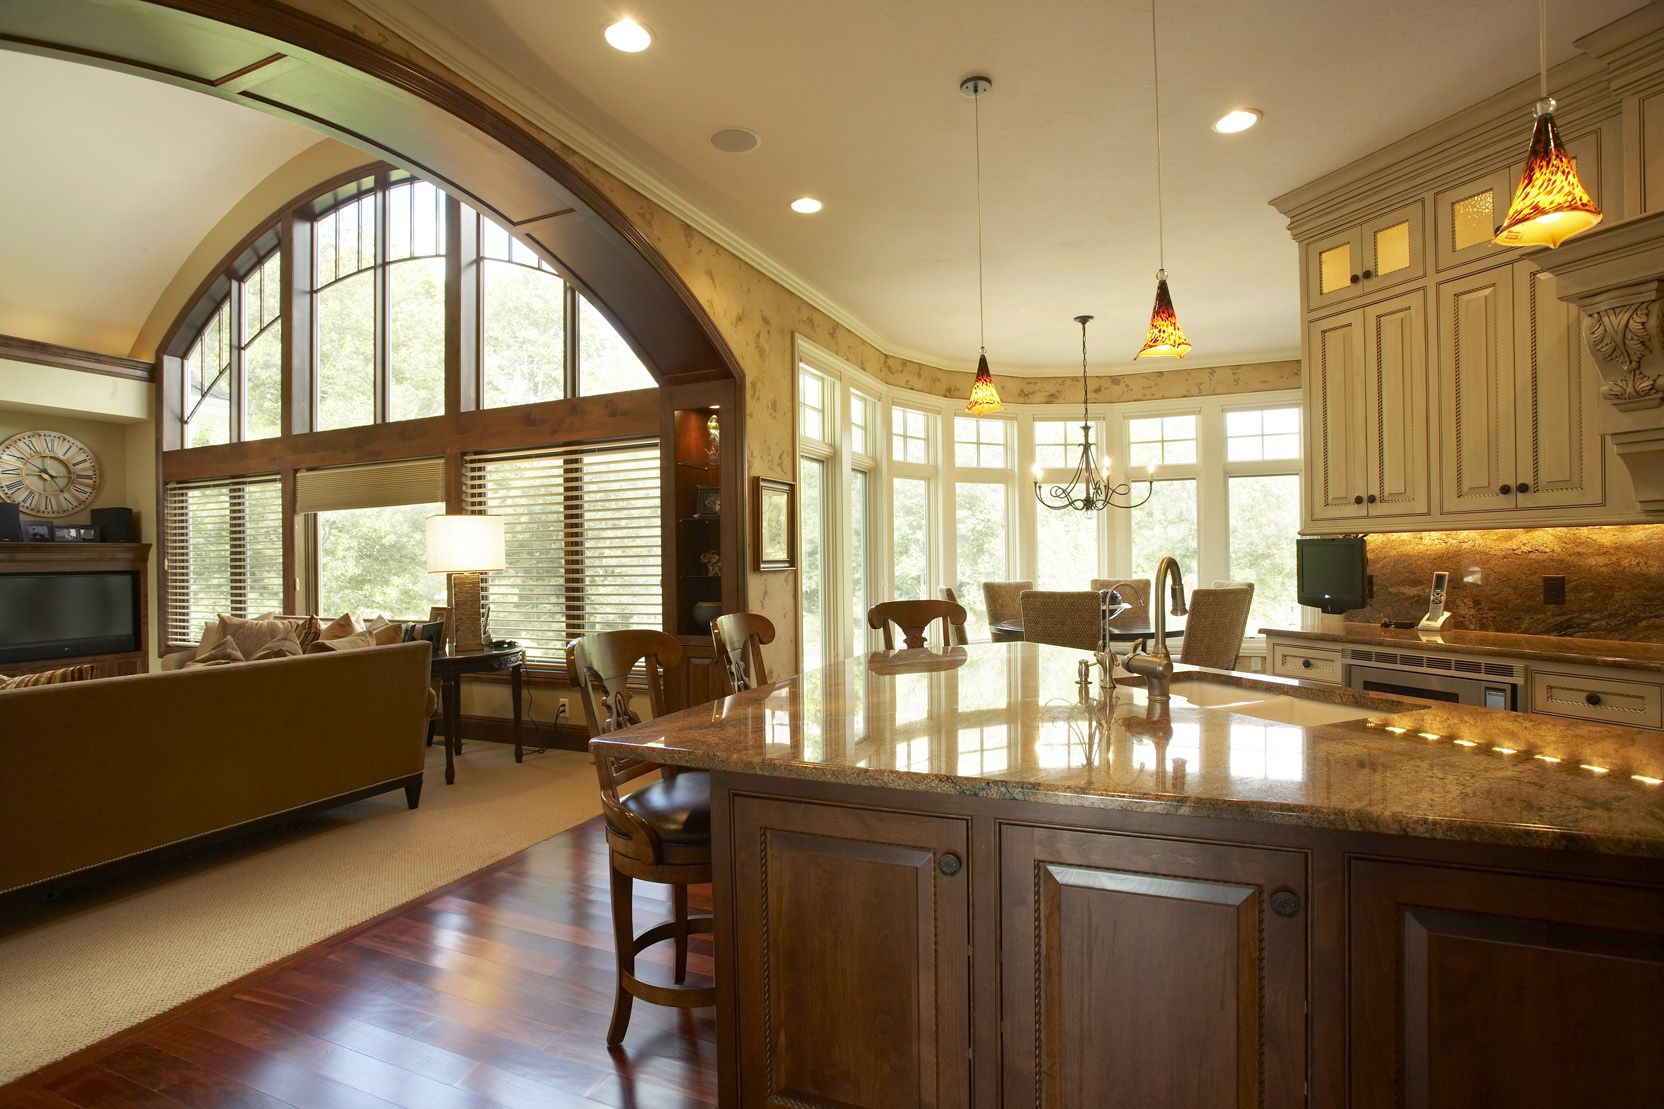 ordinary House Plans With Large Kitchen Island #4: House plans with large kitchen windows